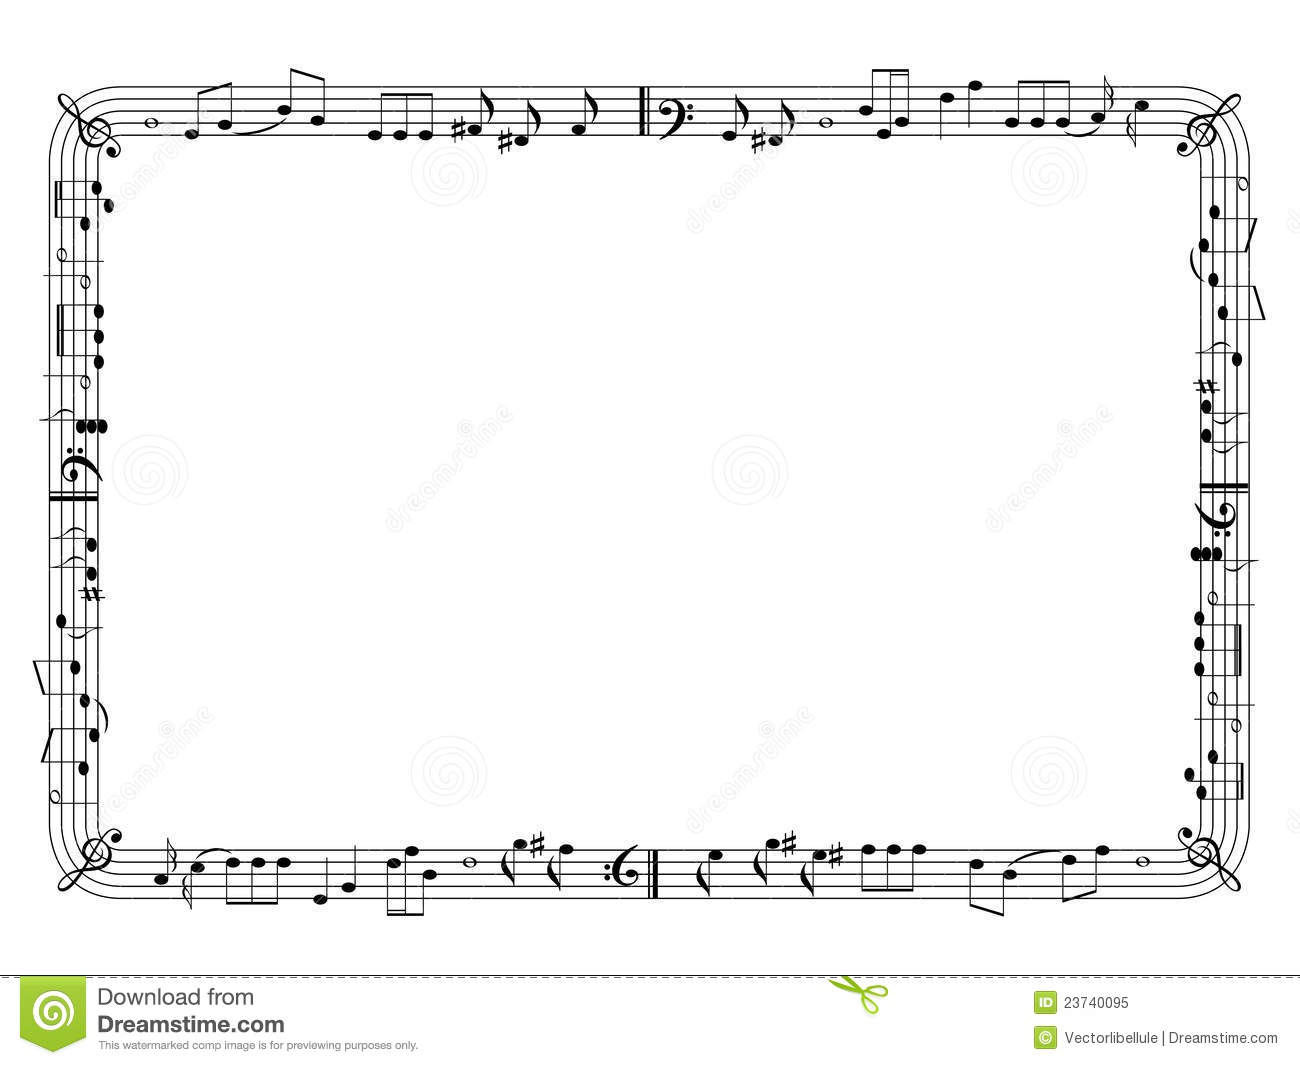 Graphical music frame royalty free stock photo image for Canciones para jardin de infantes